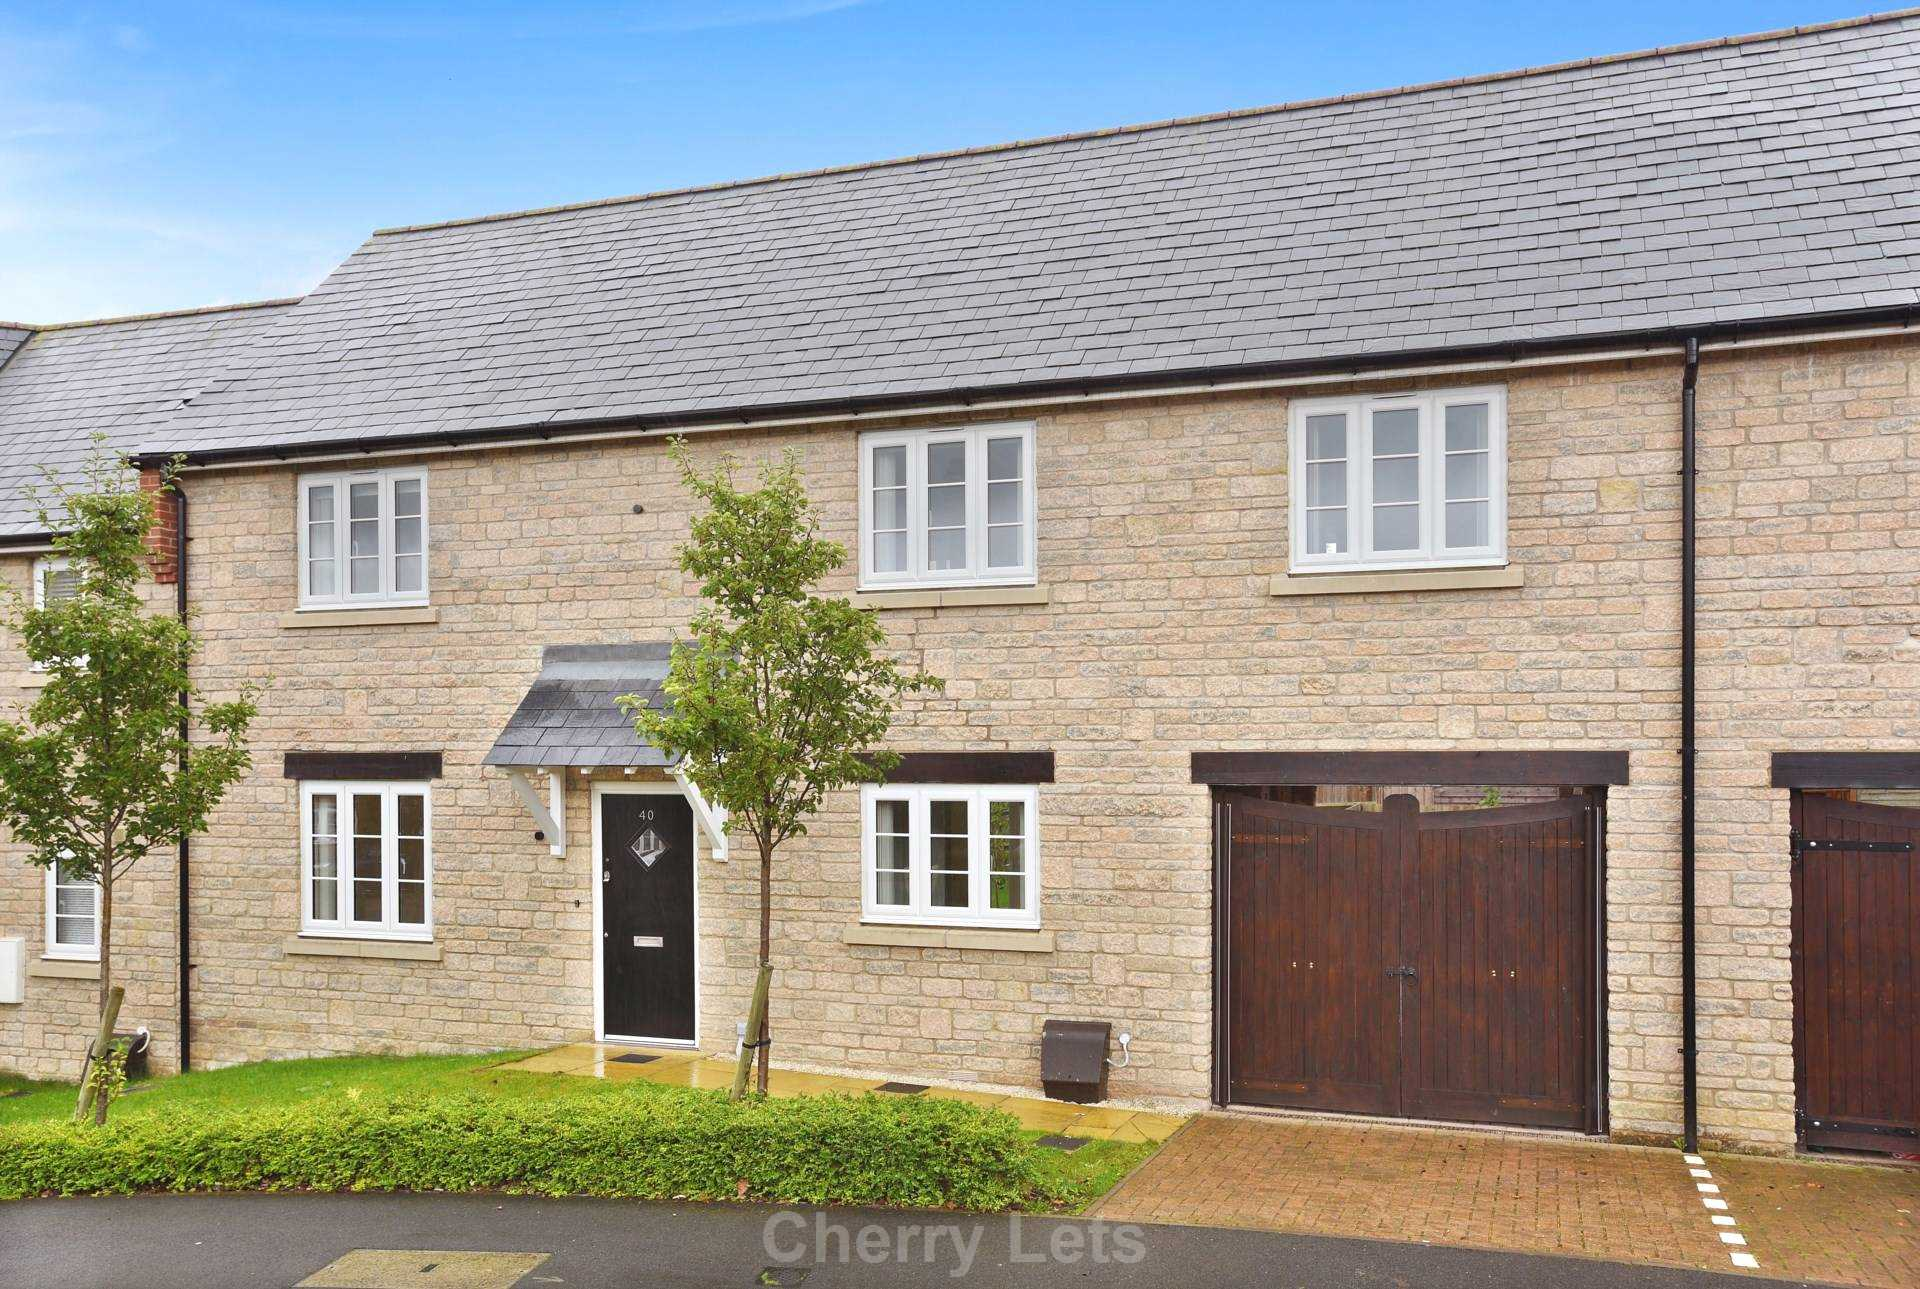 3 bed terraced house to rent in Aldous Drive, Bloxham, Banbury 0